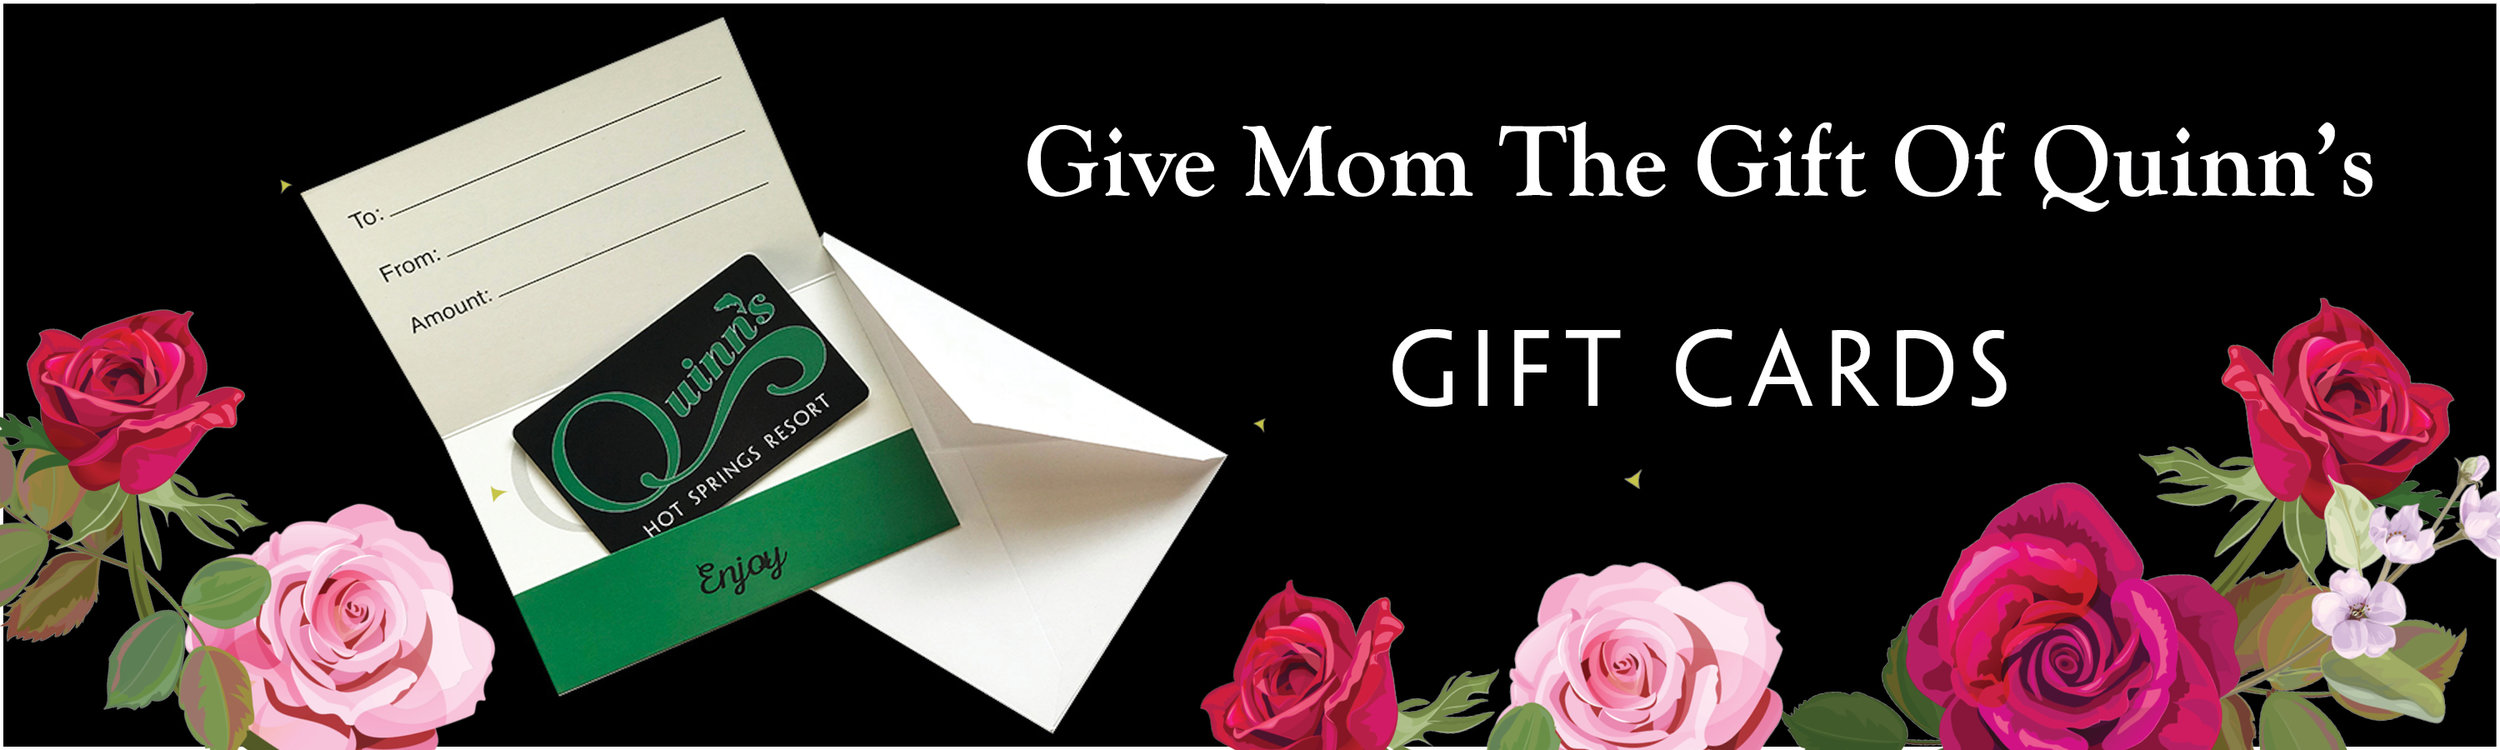 Mother's Day GCards Image 2019SS.jpg